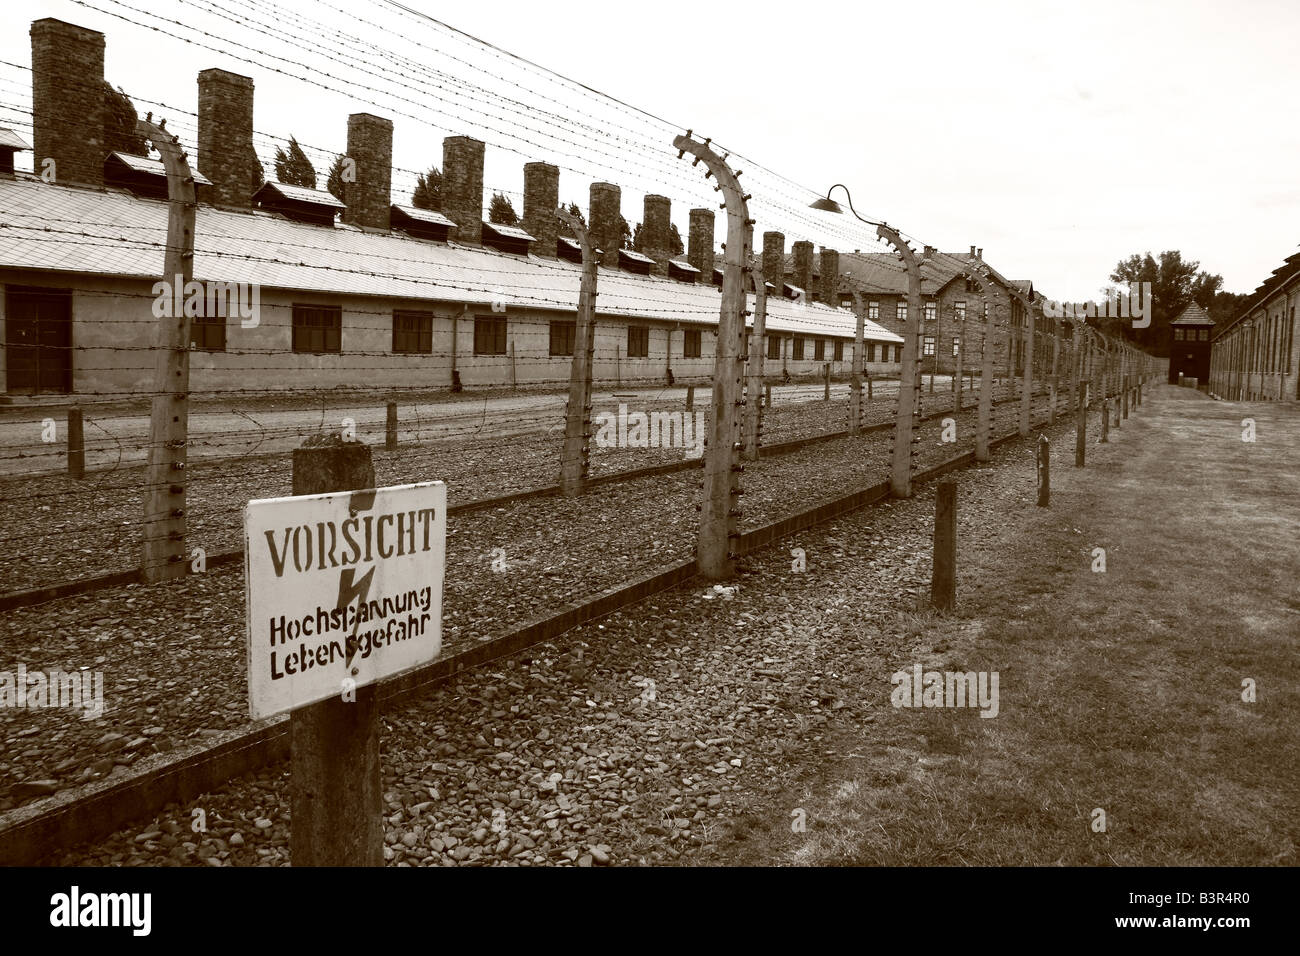 Holocaust Ww2 Krakow Stockfotos & Holocaust Ww2 Krakow Bilder - Alamy